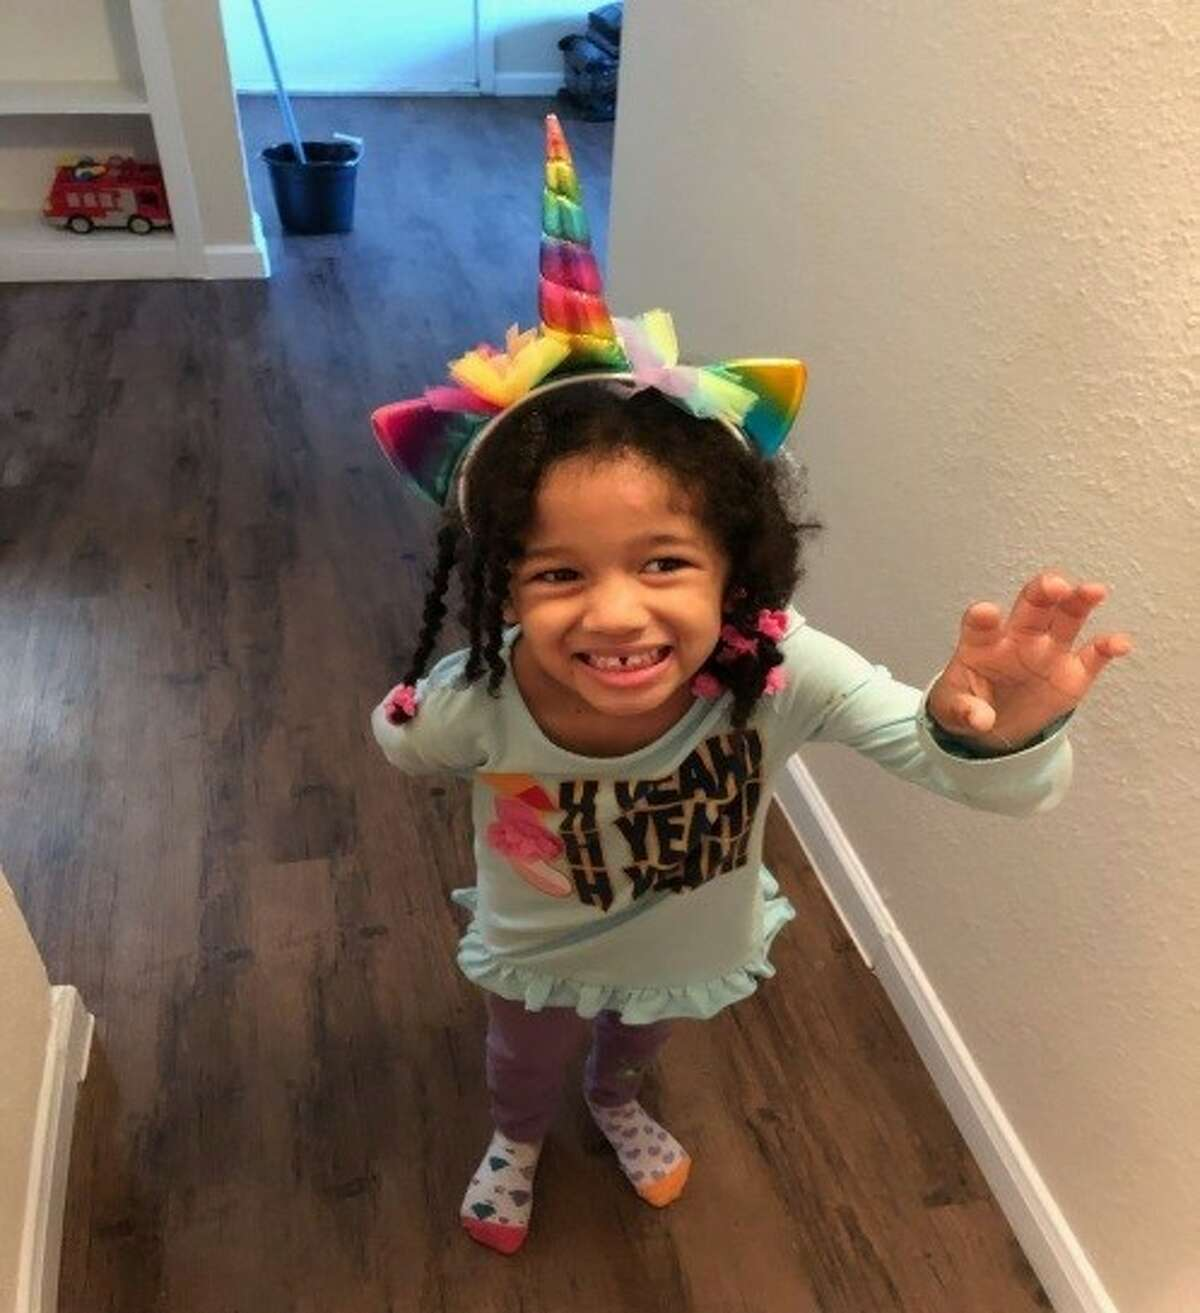 TIMELINE: See how the events surrounding the disappearance of 4-year-old Maleah Davis unfolded >>>